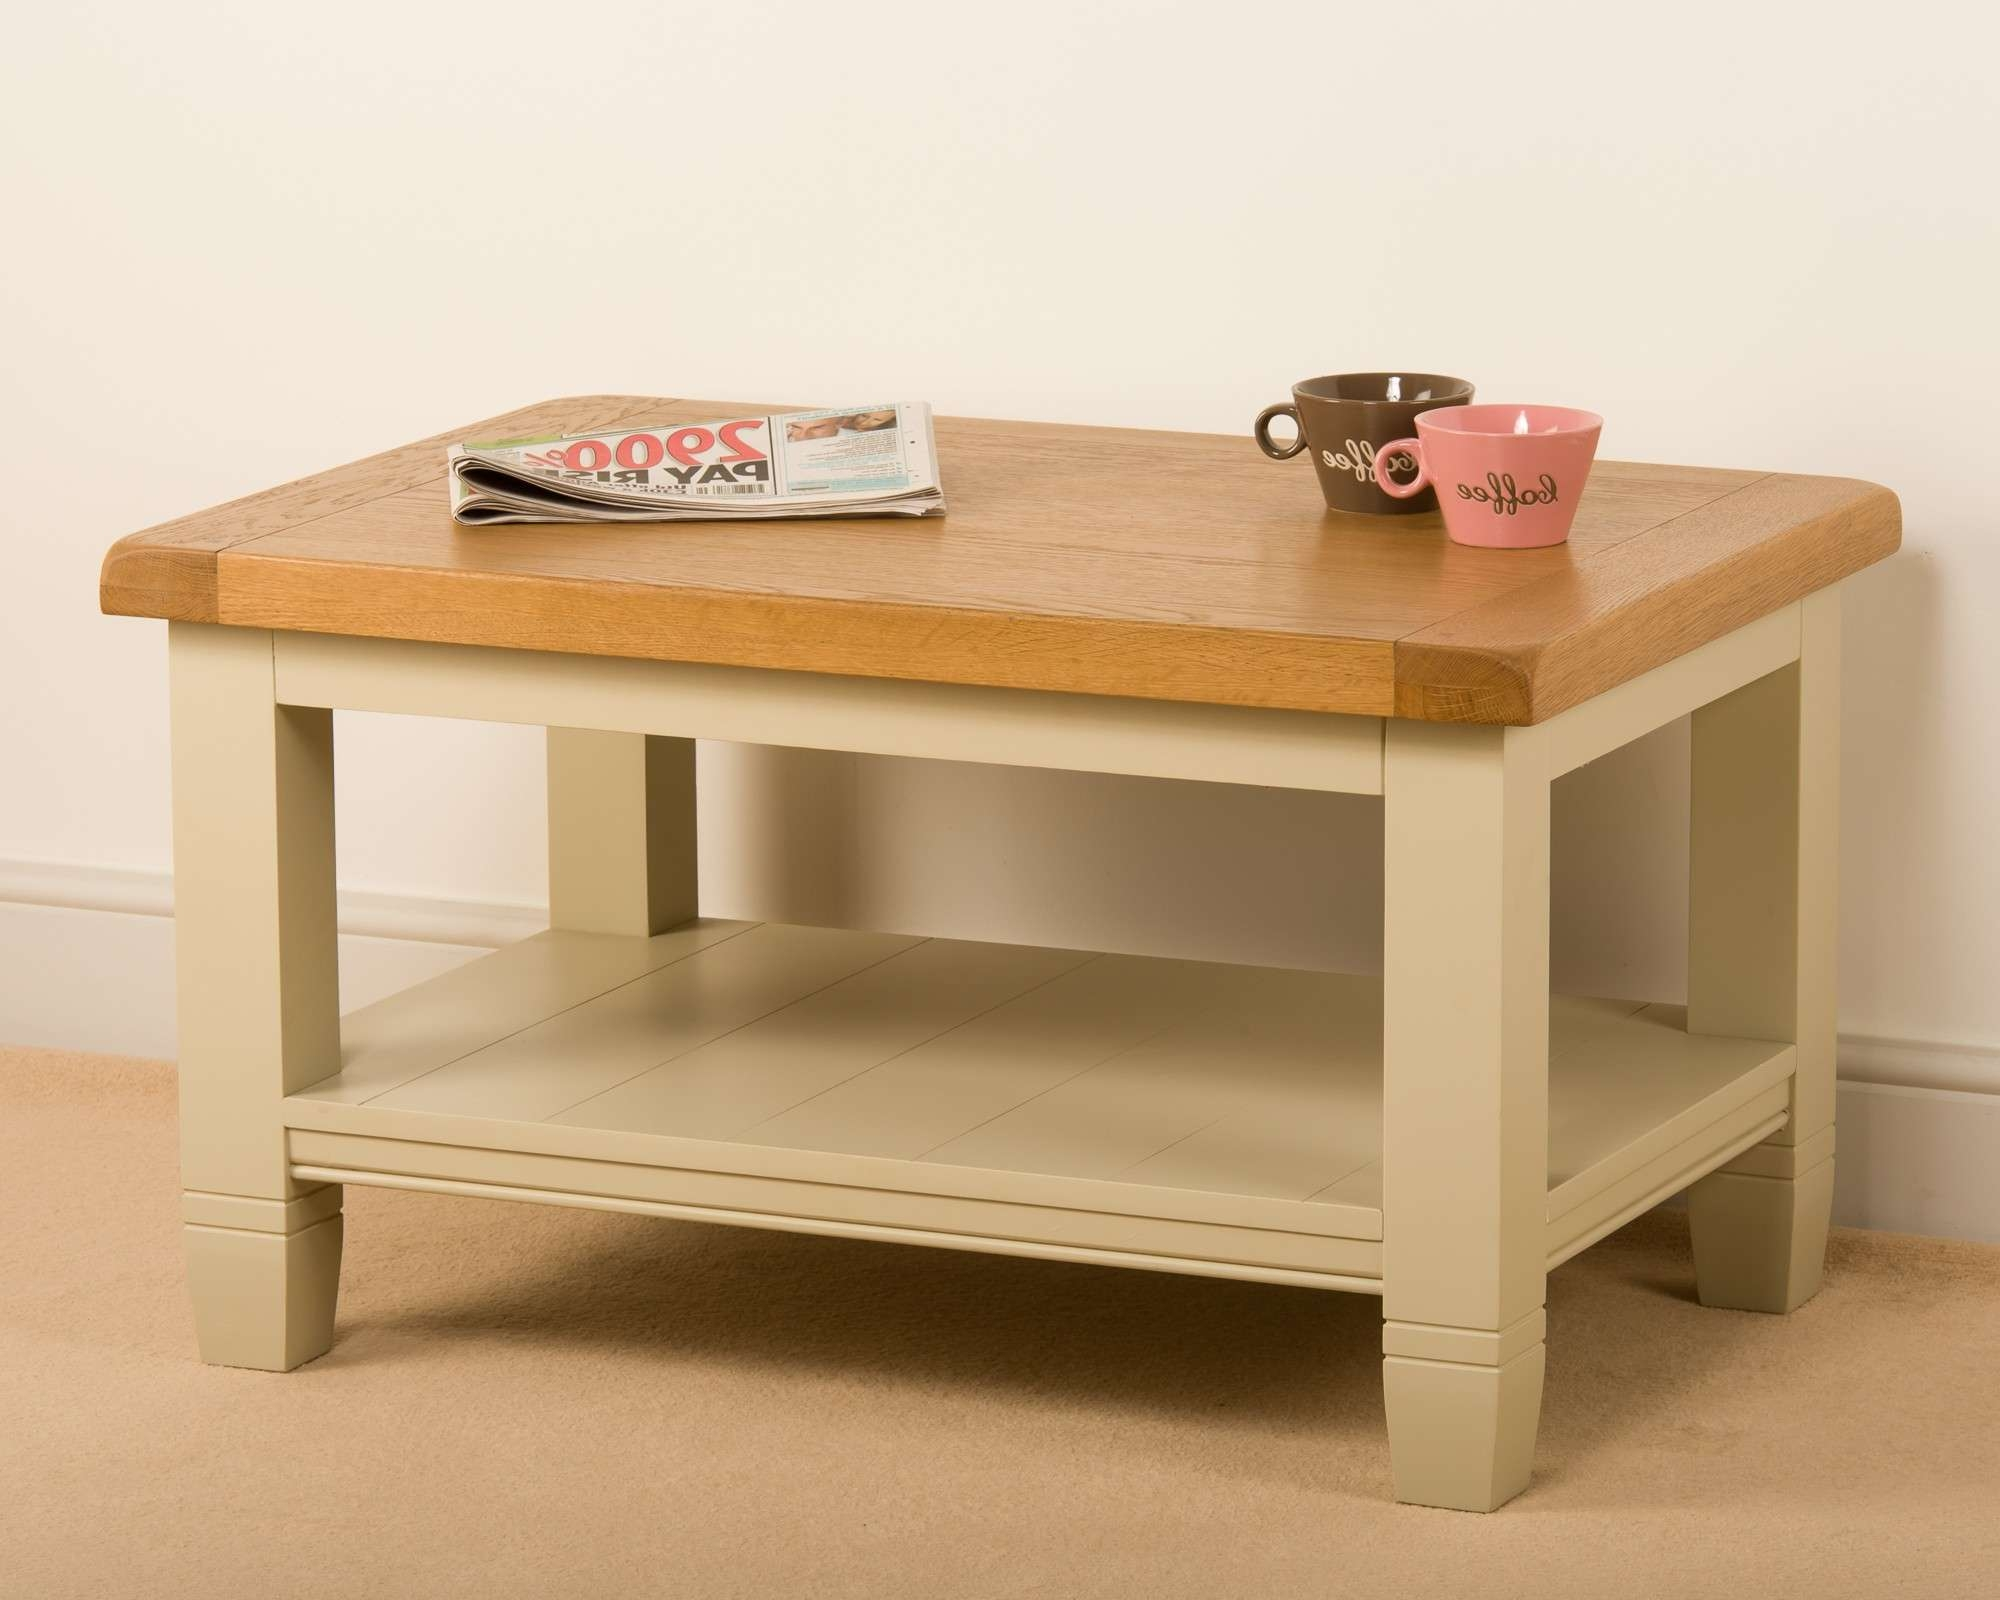 20 Inspirations of Cream And Oak Coffee Tables